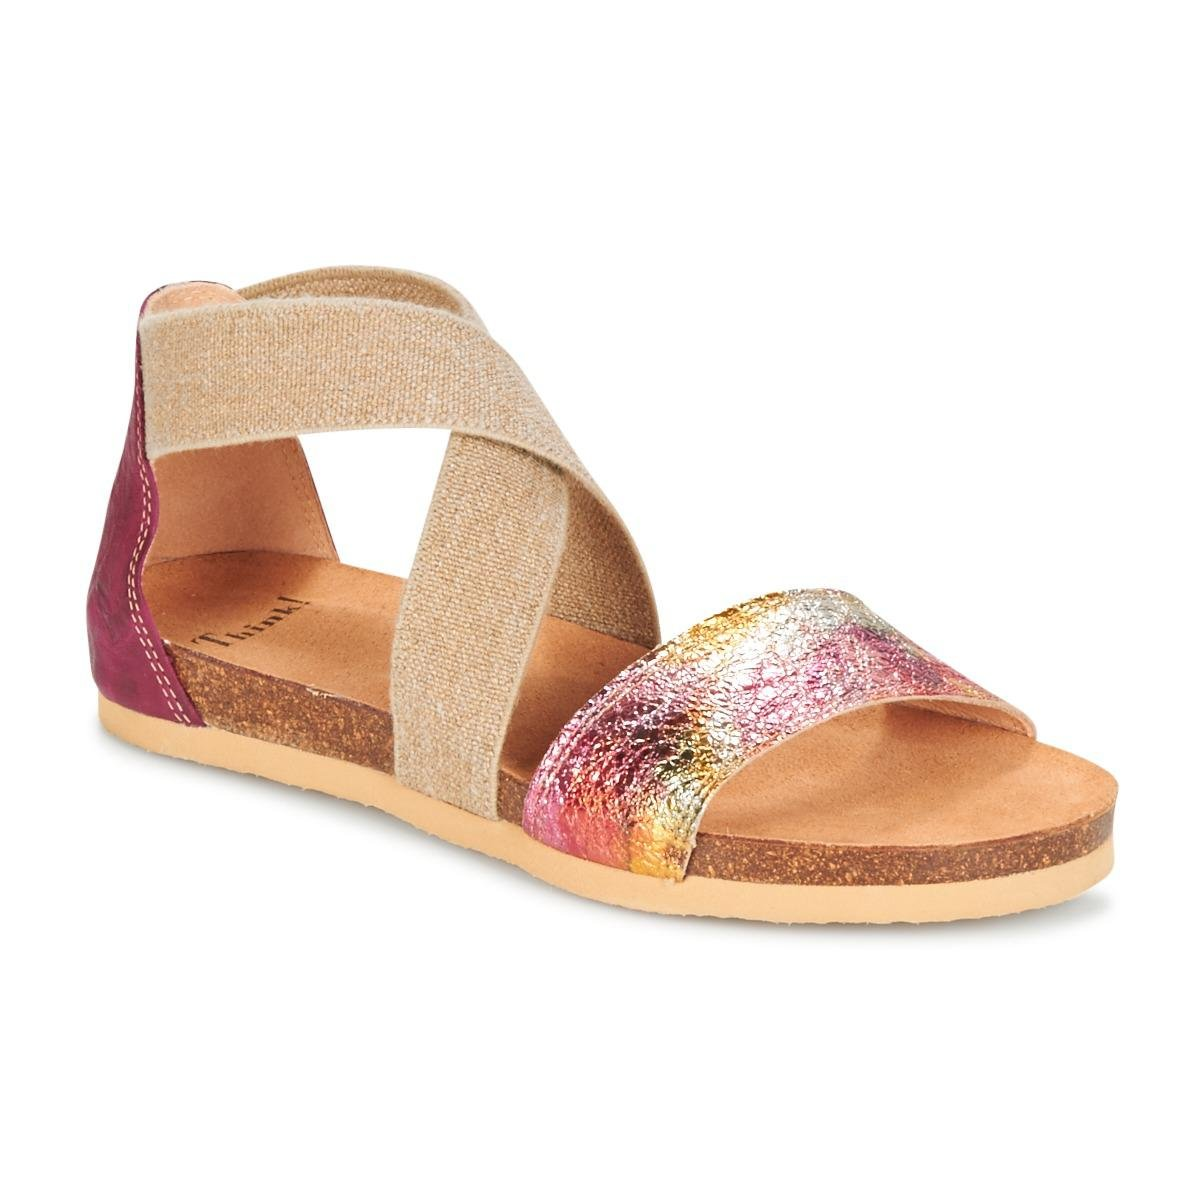 Discount Think Traduk Pink Sandals for Women On Sale